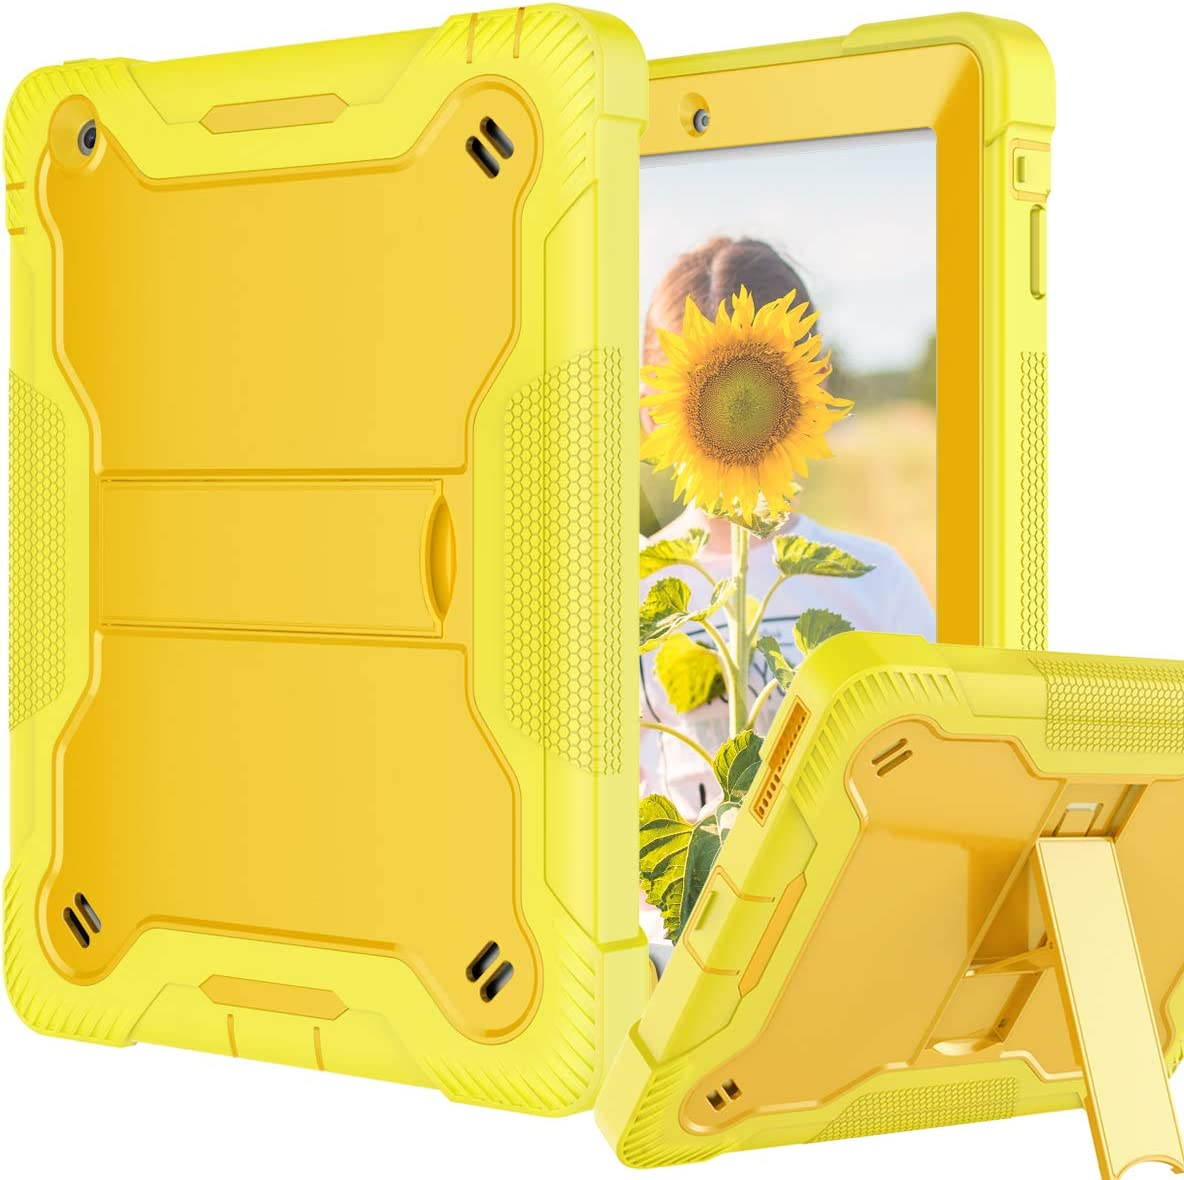 Fingic iPad 2 Case, iPad 3 Case, iPad 4 Case, Kickstand Shockproof Heavy Duty High Impact Resistant Rugged Rubber Three Layer Armor Full Body Protection Cases for iPad 4th/3rd/2nd Generation, Yellow